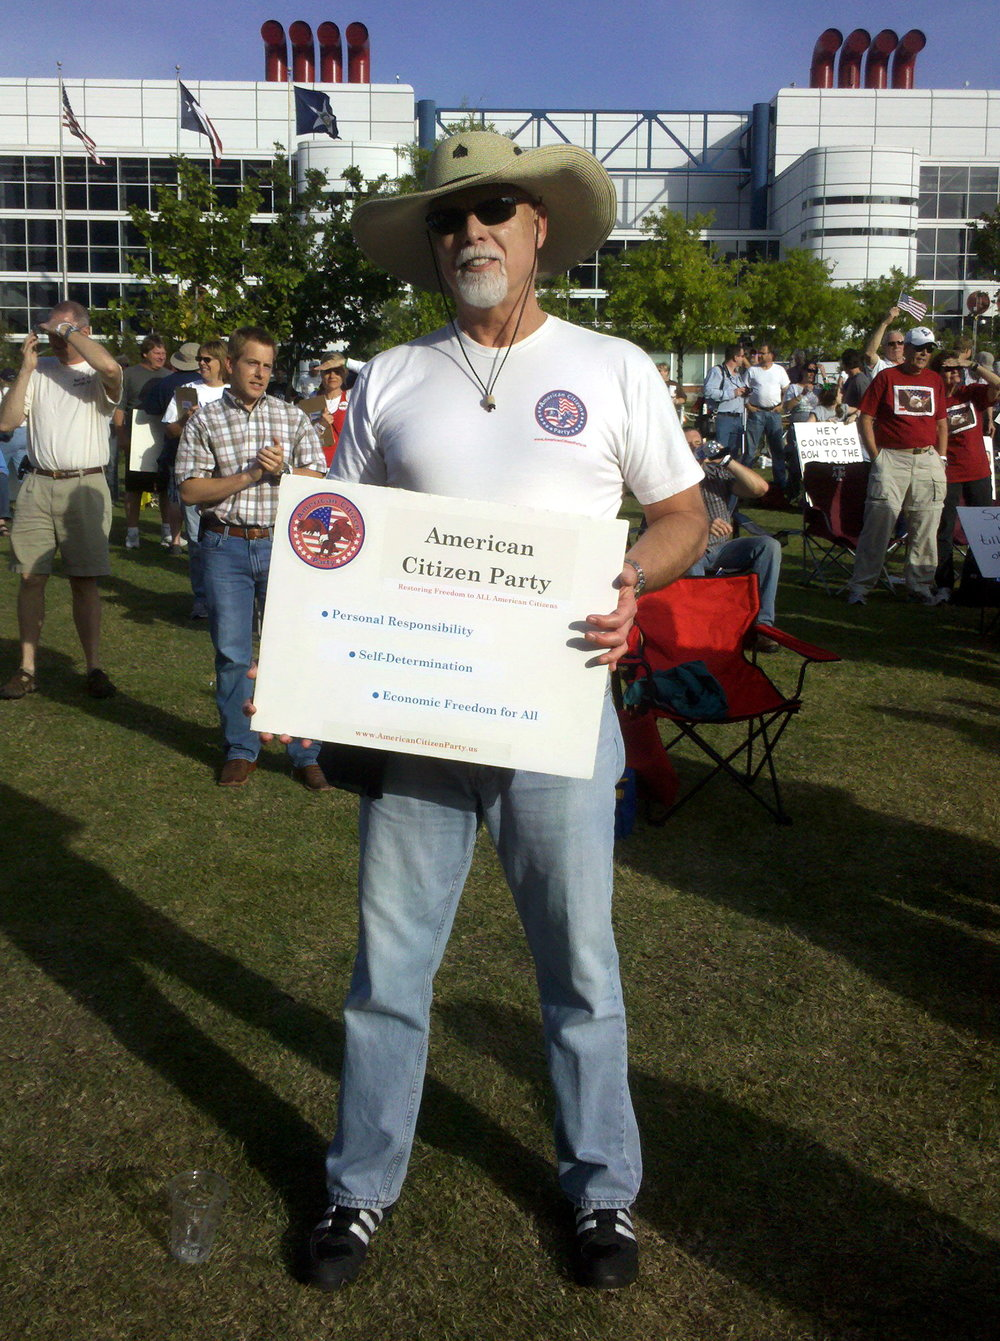 Bob McNeil - 2010 - Age 61 - Tax Day Tea Party Rally - Houston, Texas